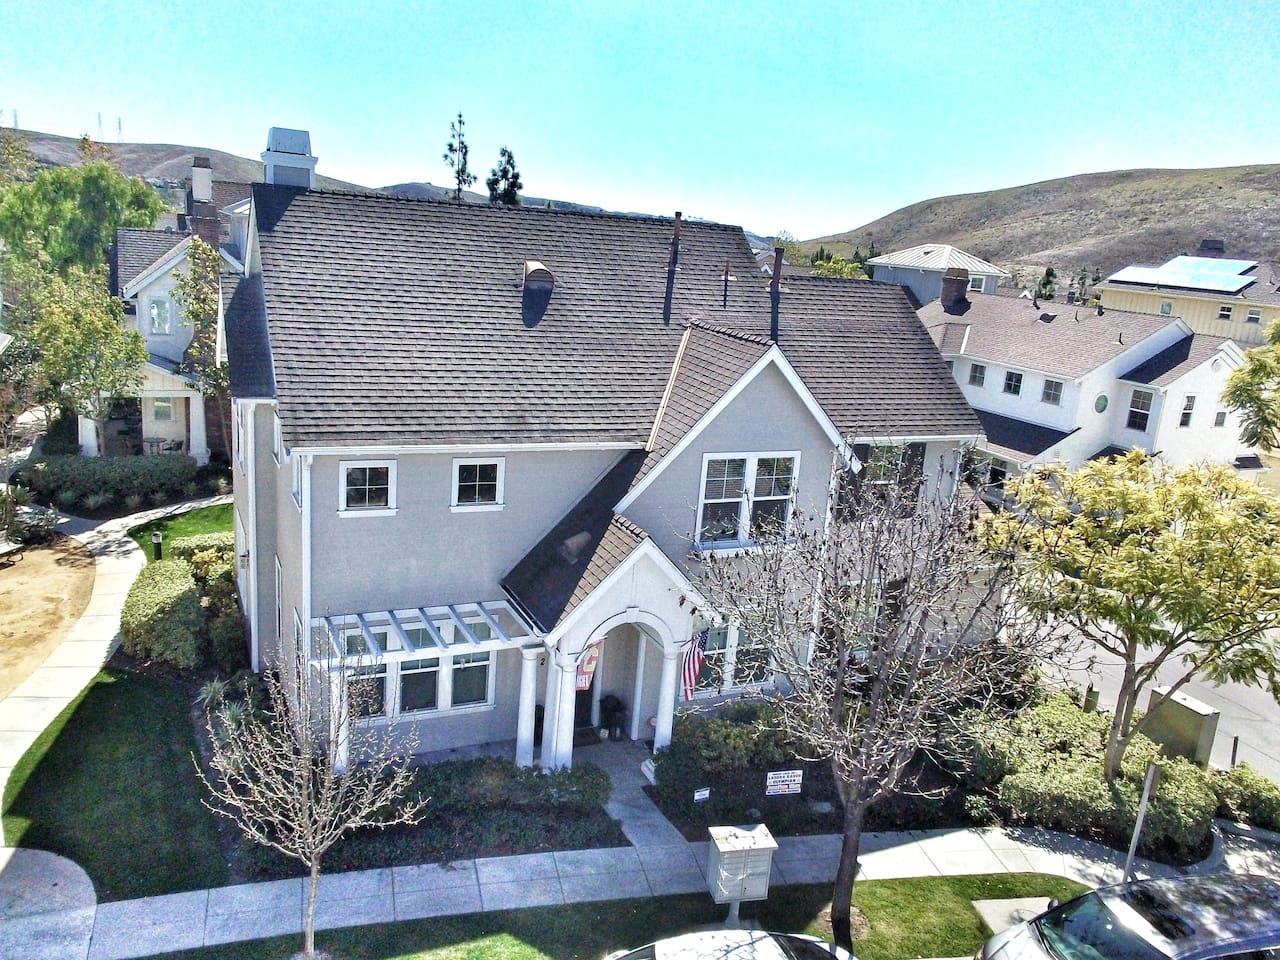 Aerial view of front of home